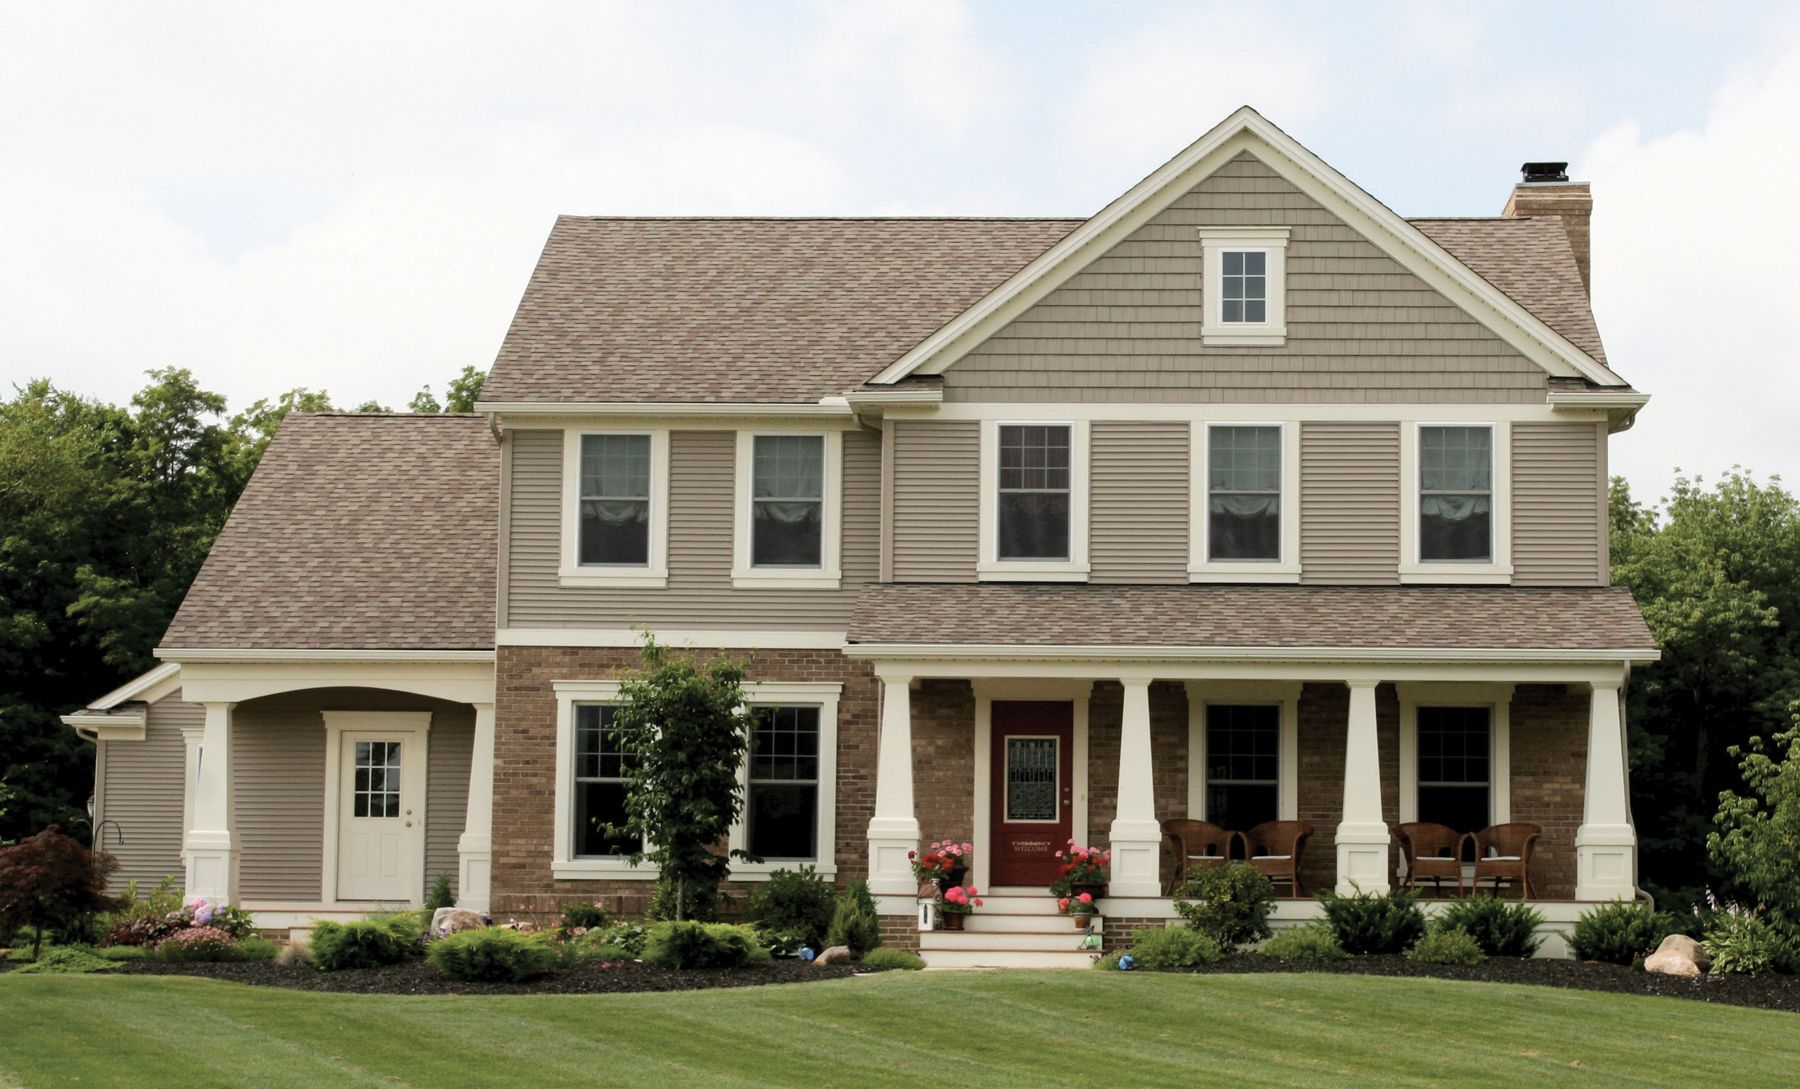 Home Accents Norandex Home Accents Home Siding Colors